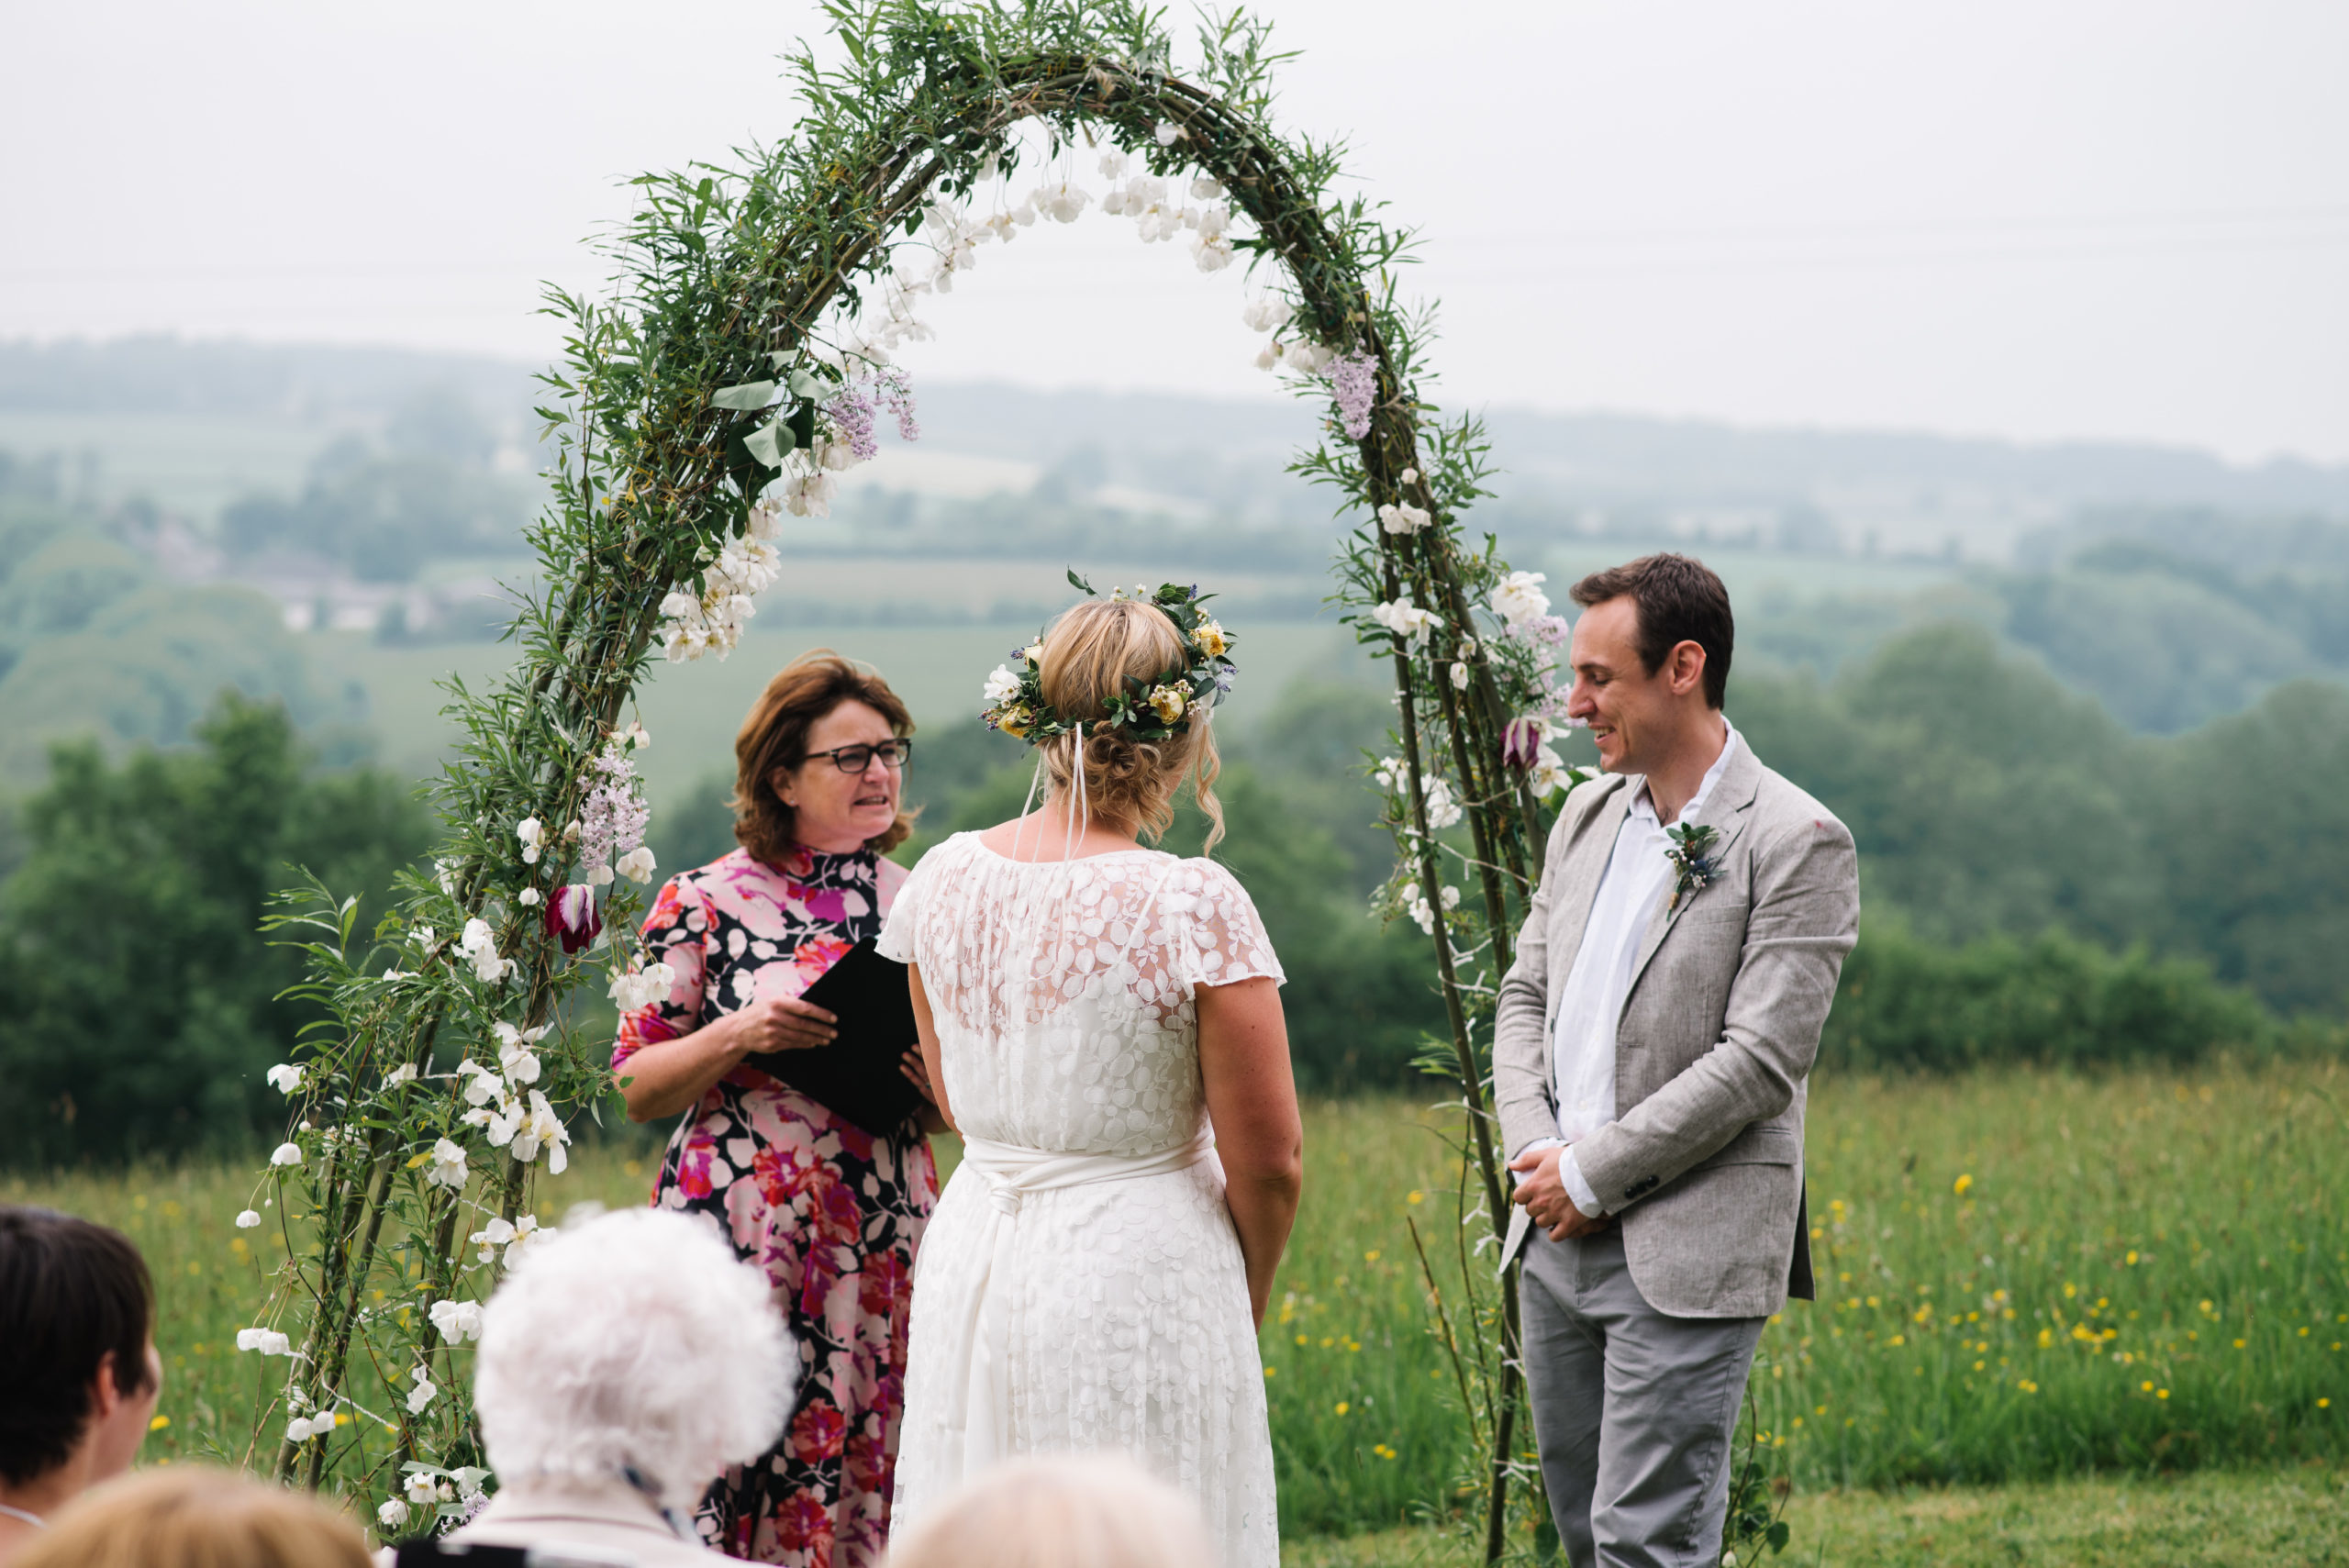 Wedding celebrant leading ceremony in Devon